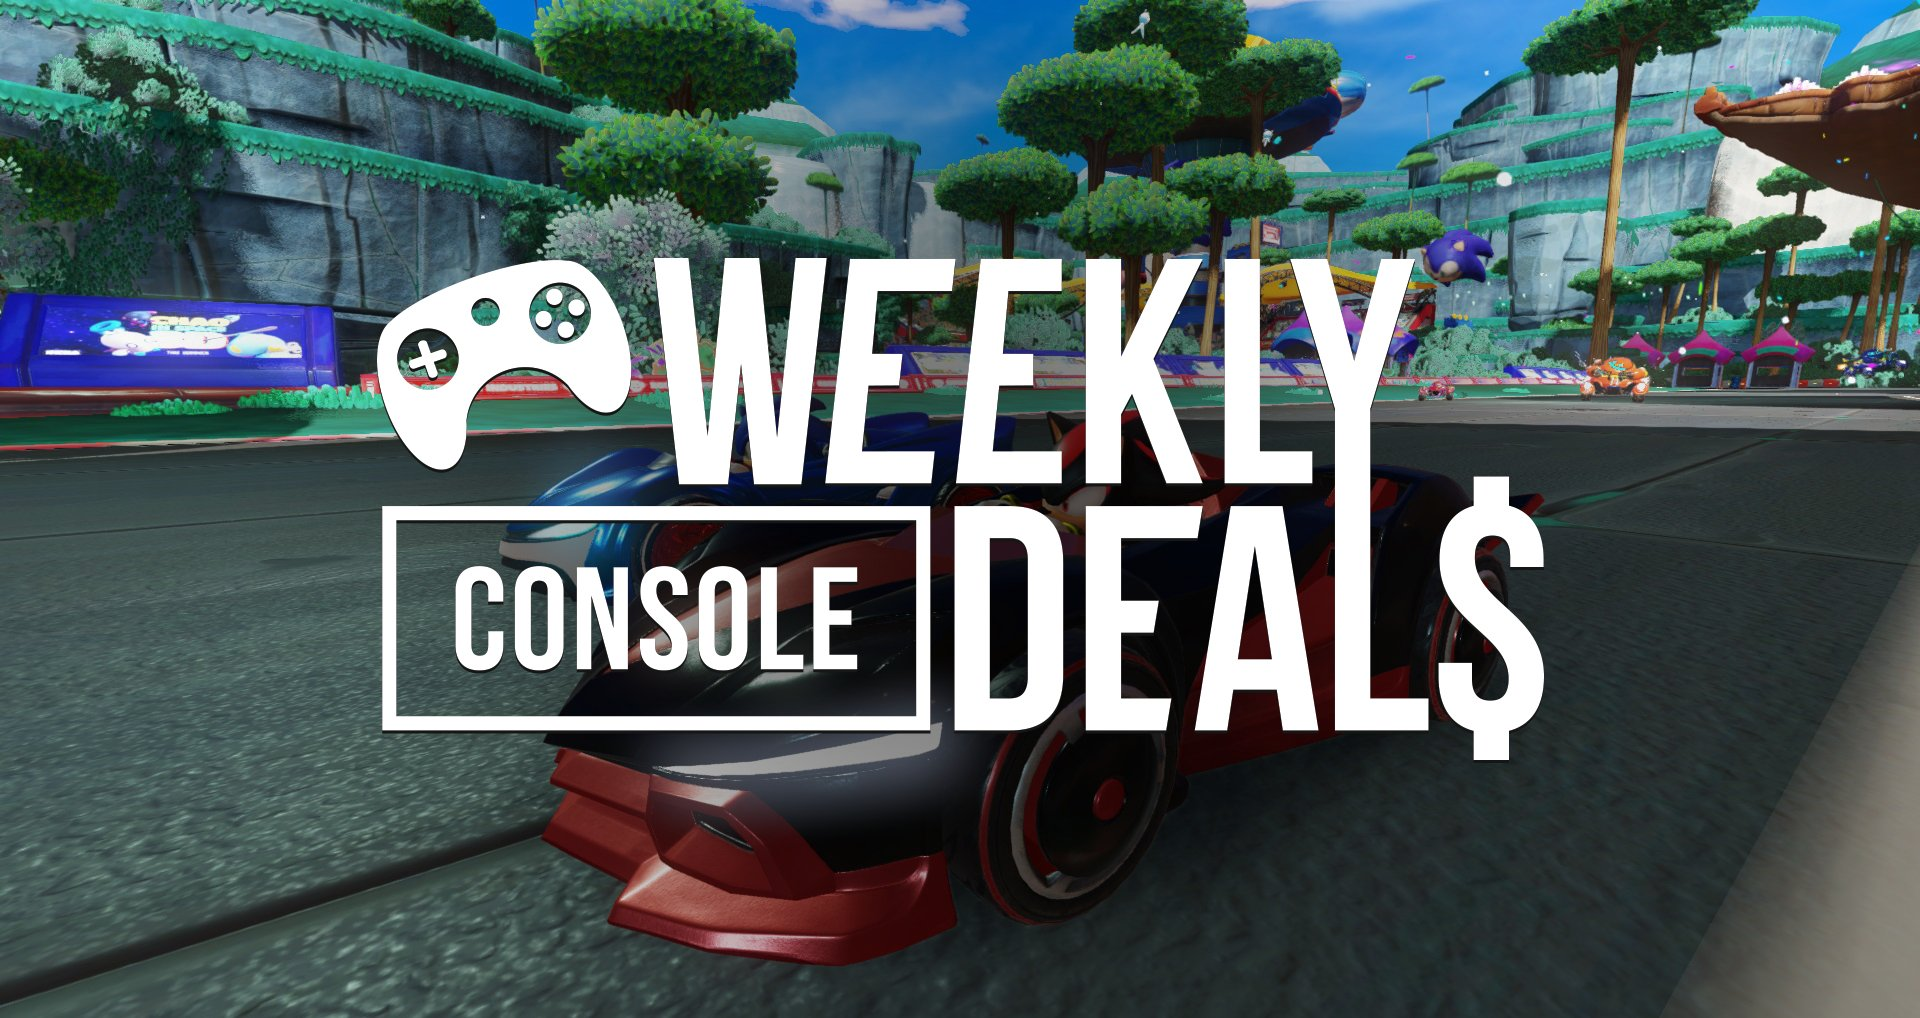 Weekend Console Download Deals for June 21: Gotta go fast